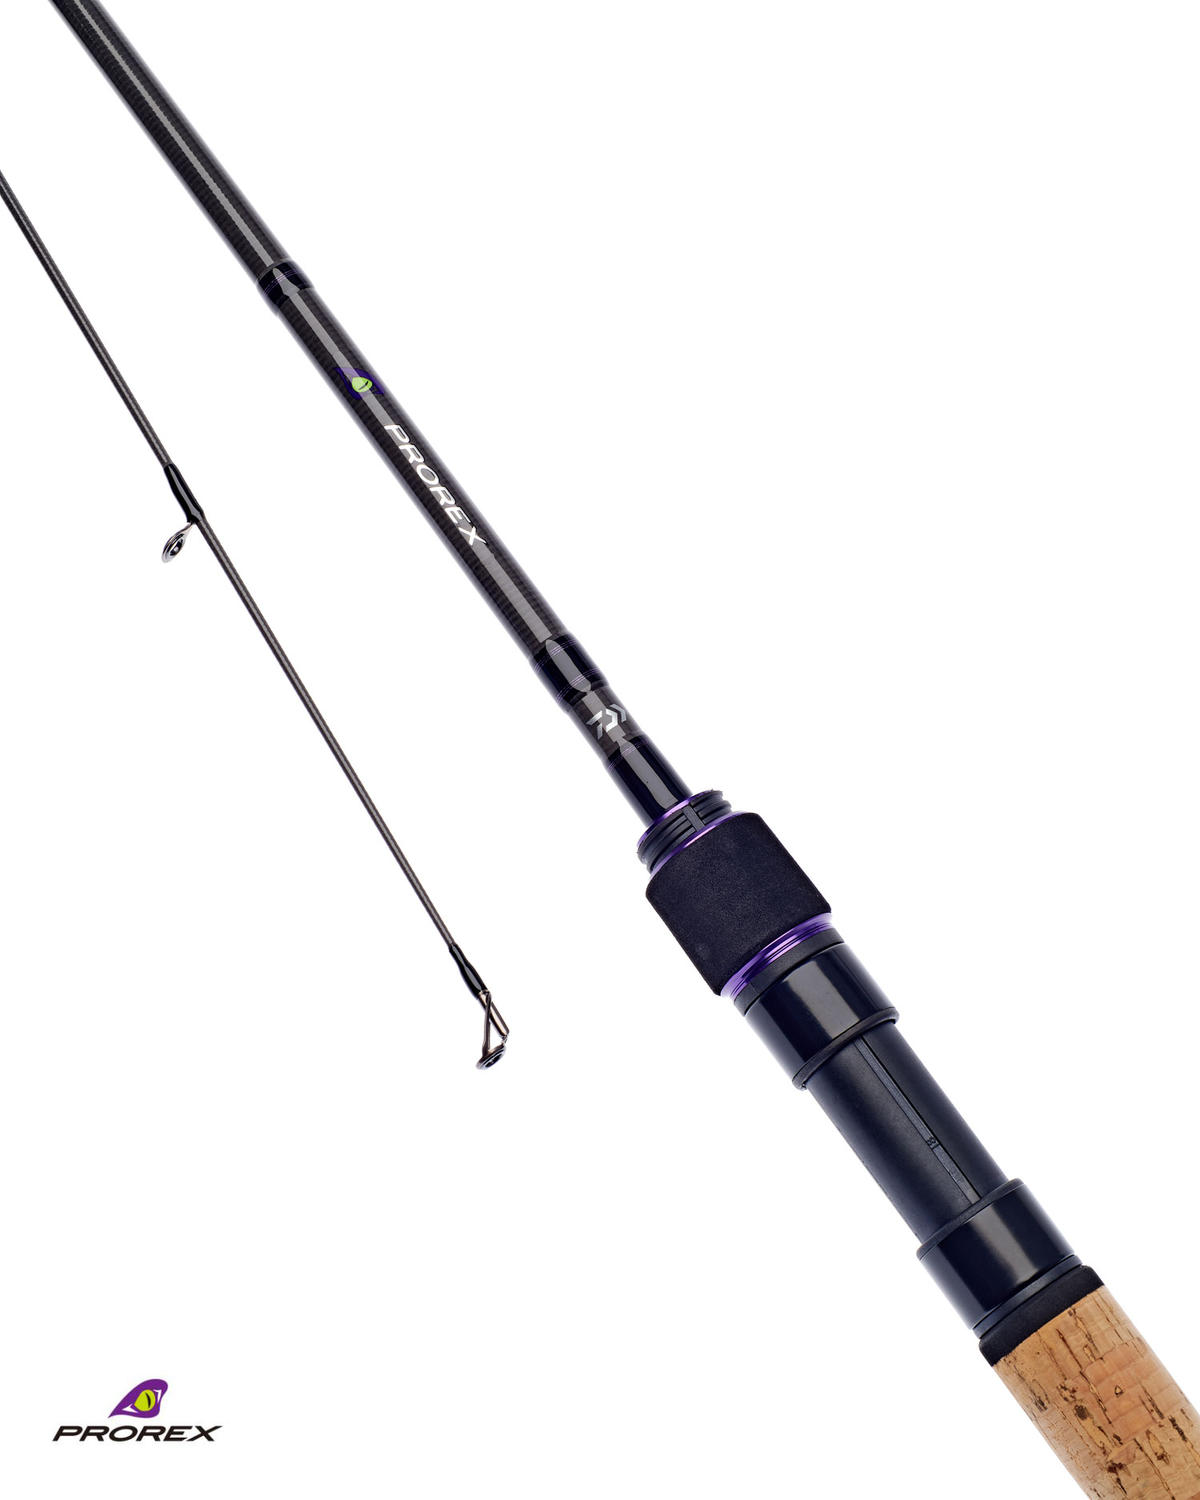 New Daiwa Prorex S Spinning Rods 6ft-9ft Pike / Predator - All Models Available